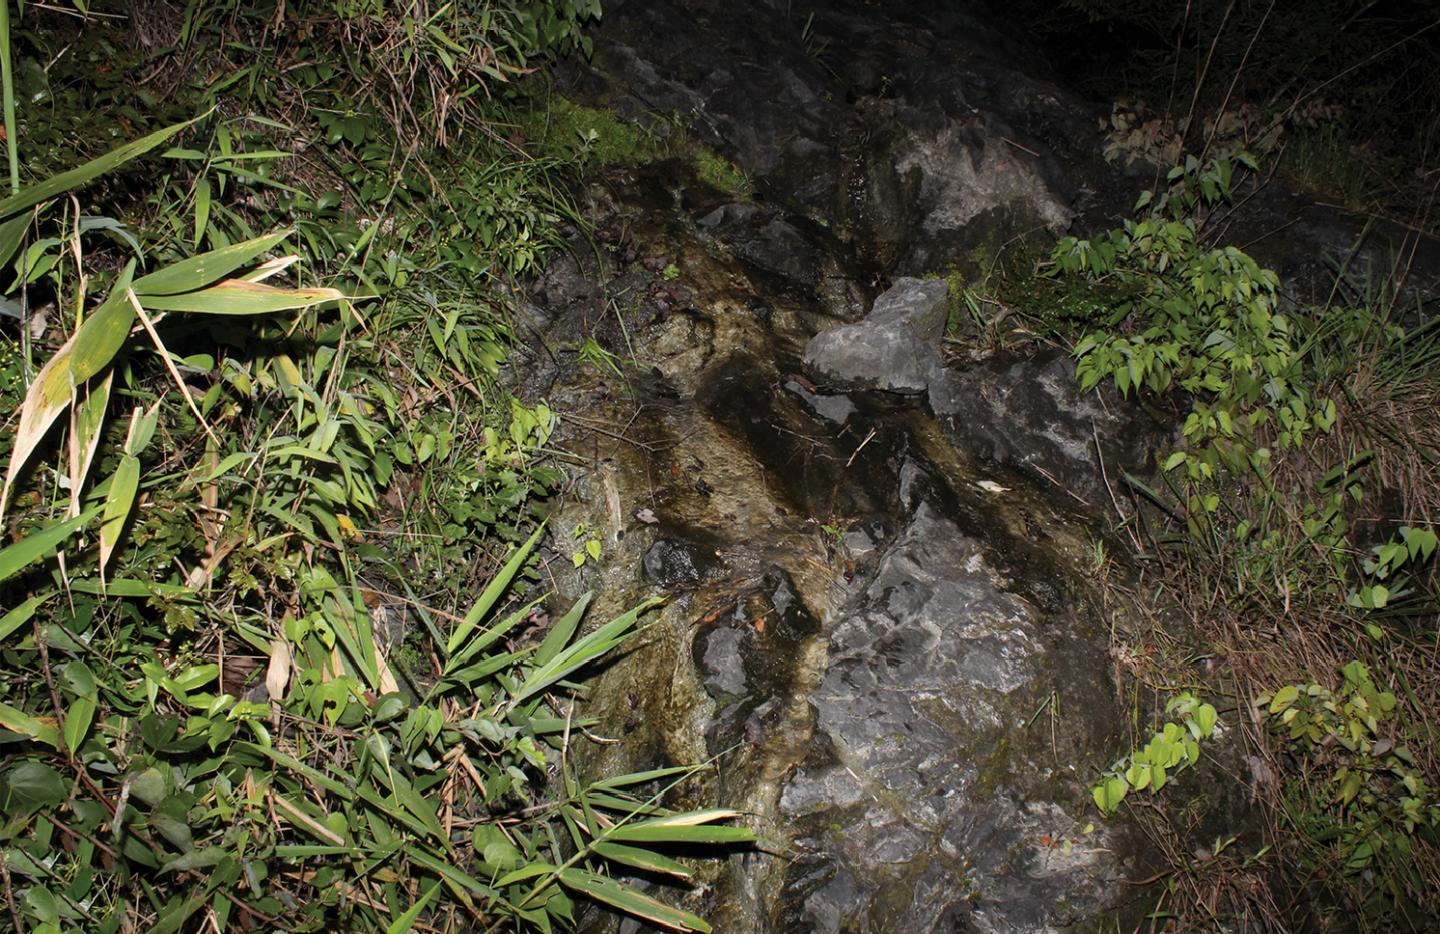 Limestone hillstream at the type locality of Yuebeipotamon calciatile. Photo by Hsi-Te Shih.